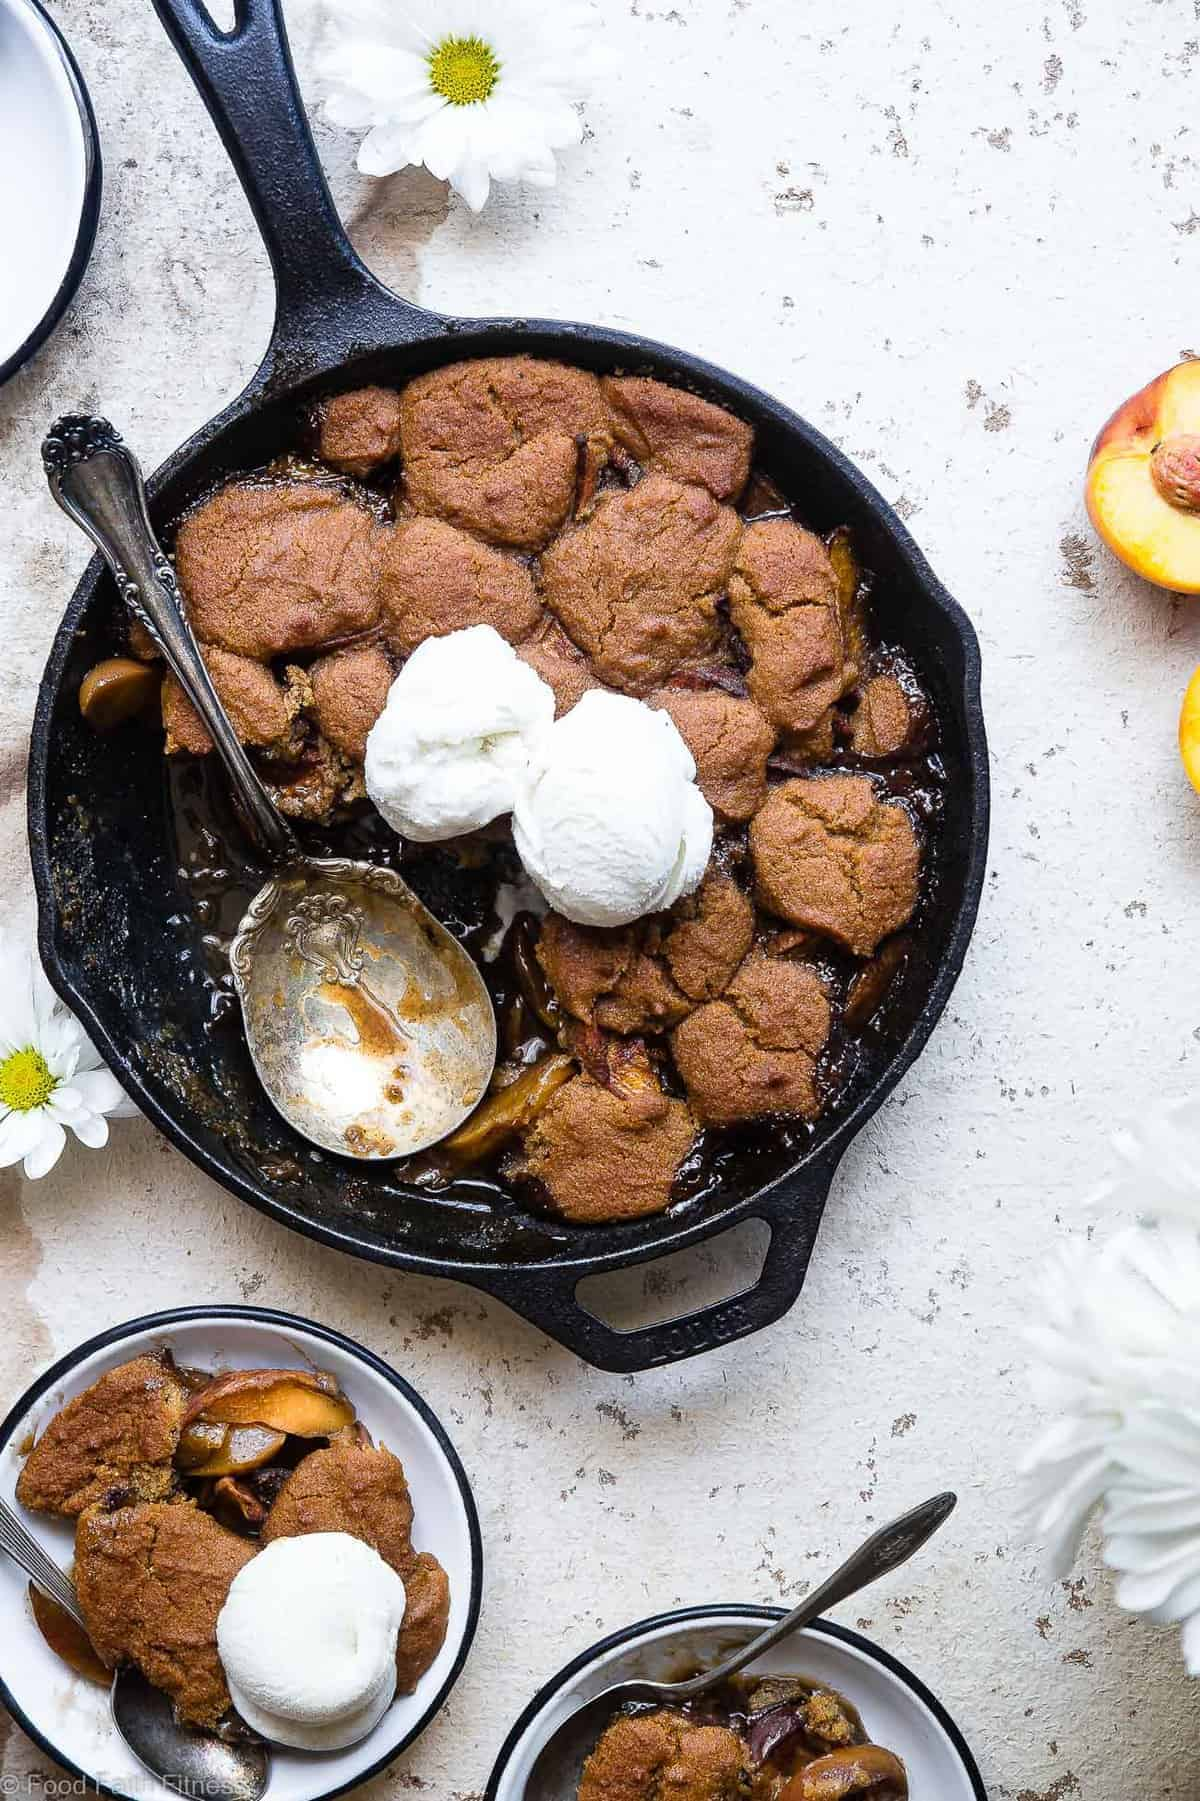 paleo peach cobbler served with ice cream in a large skillet pan